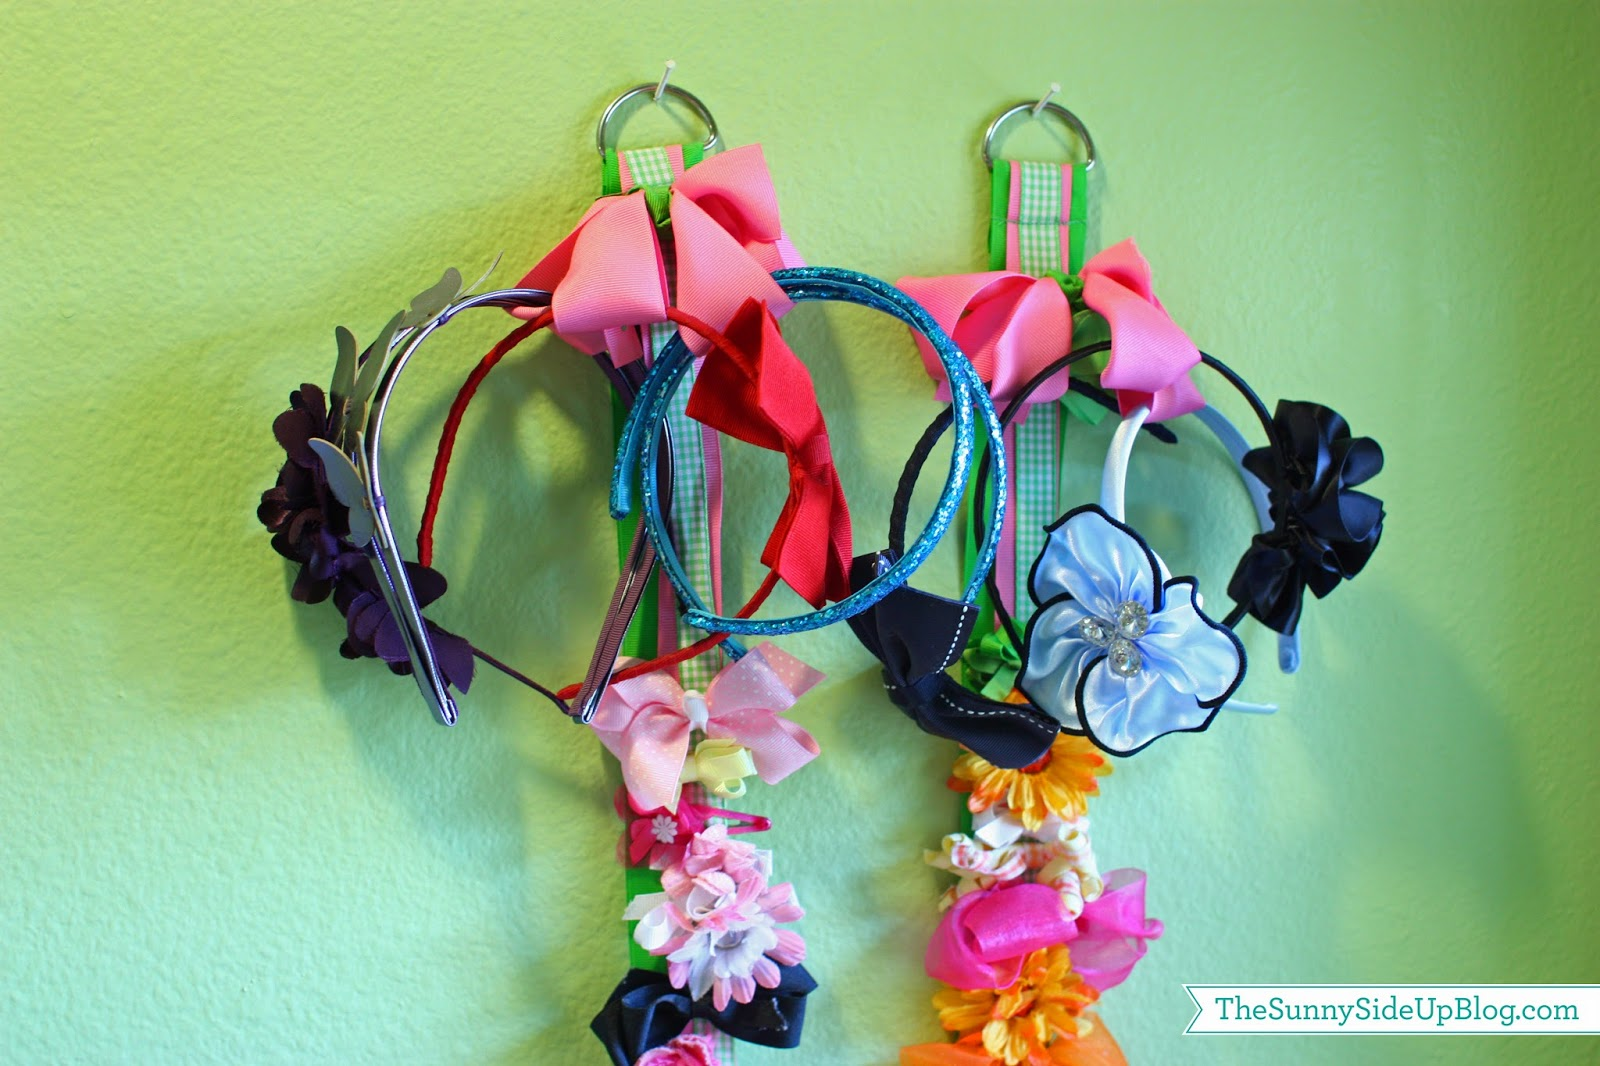 How to organize hair bows - I Just Looped The Headbands Through The Top Large Ribbon Worked Great